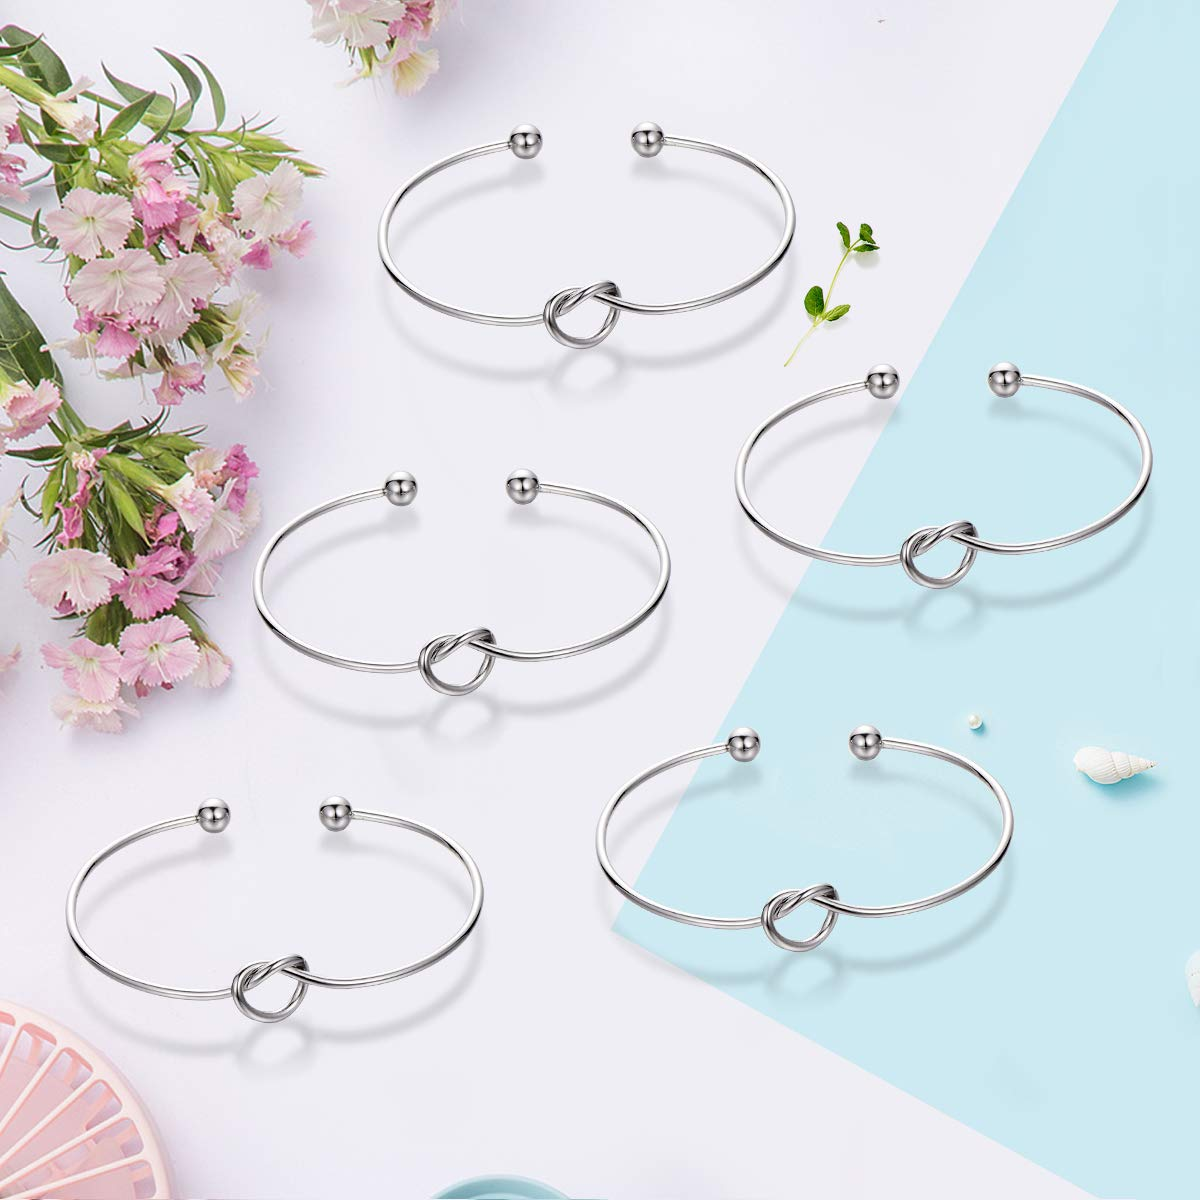 Ikooo Bridesmaid Bracelets 5 pcs Love Knot Open Bangle Bride Tribe Hair tie Best Friend, BFF The Bride Wedding Gift (5 Silver Black Hair tie) by Ikooo (Image #4)